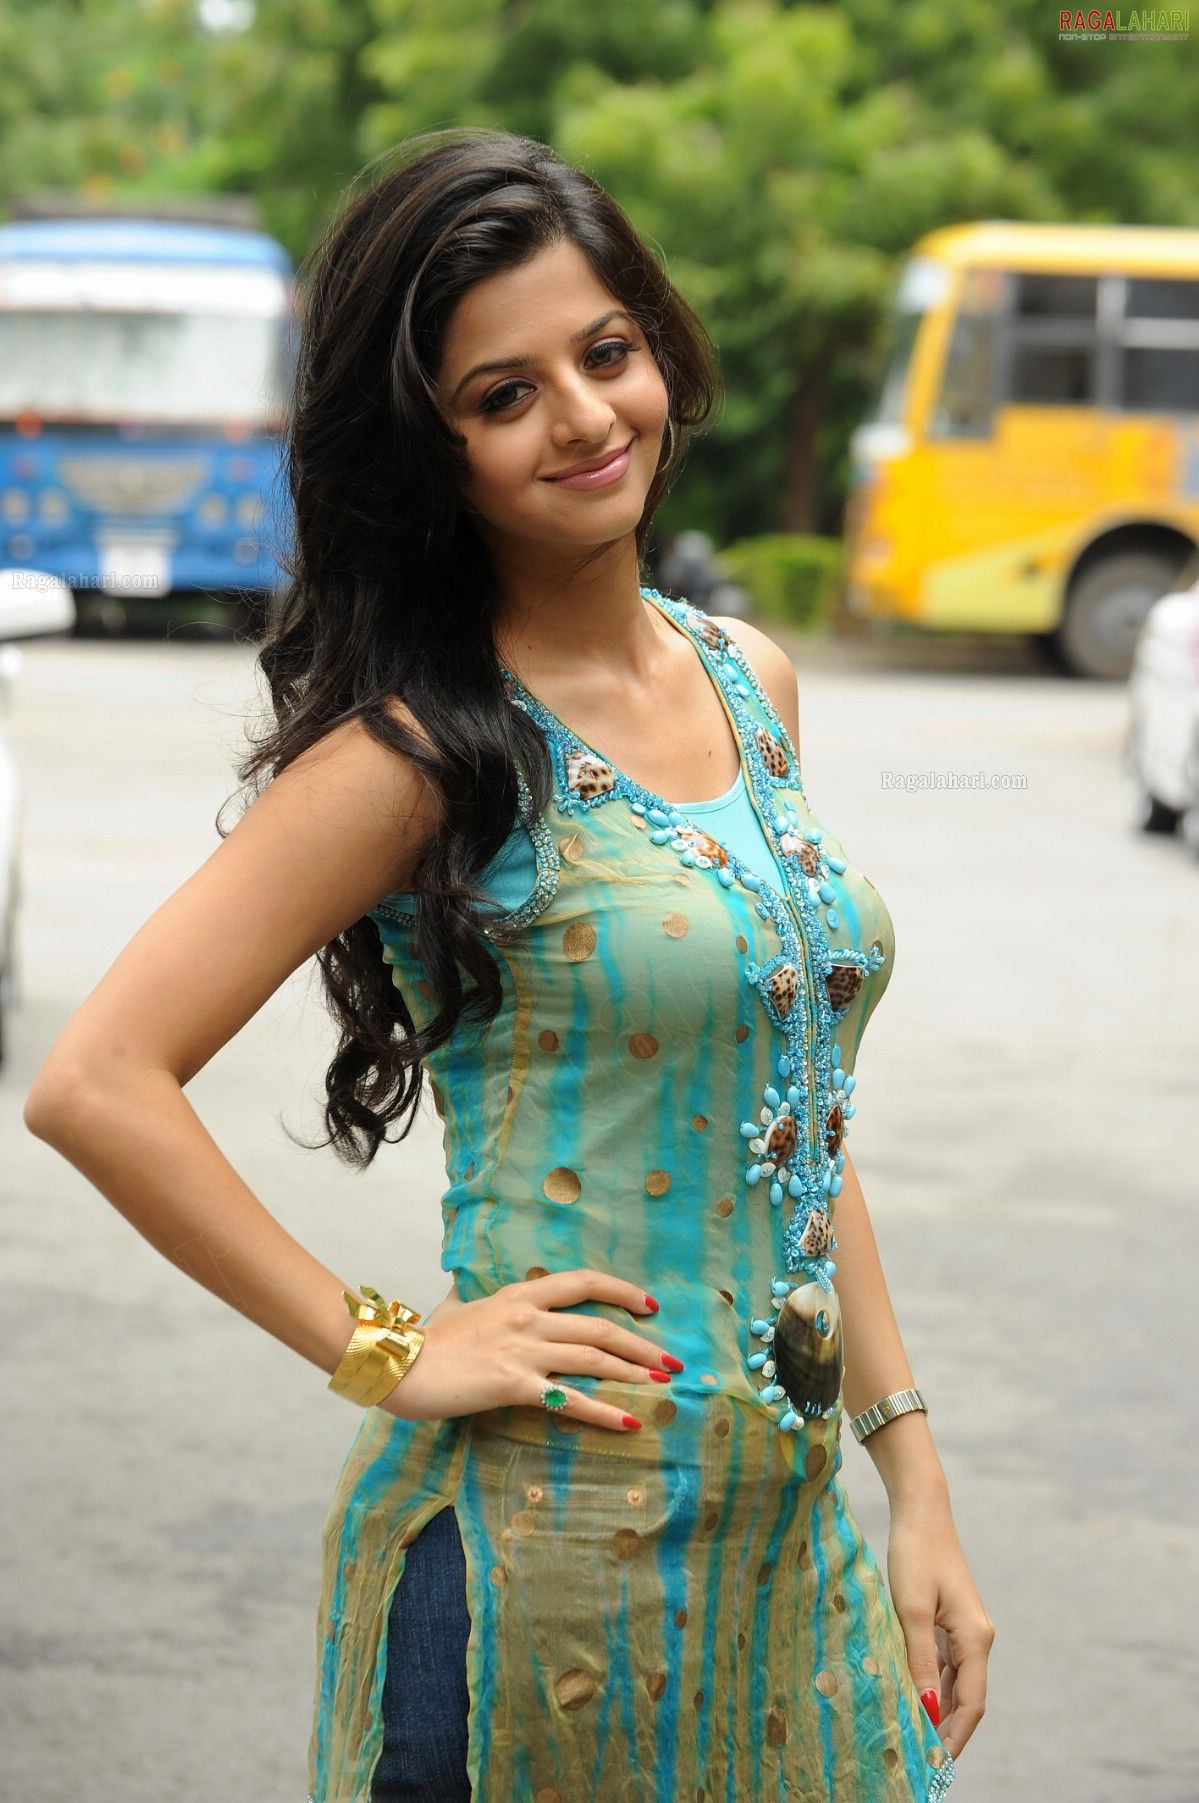 south-indian-girls-night-pic